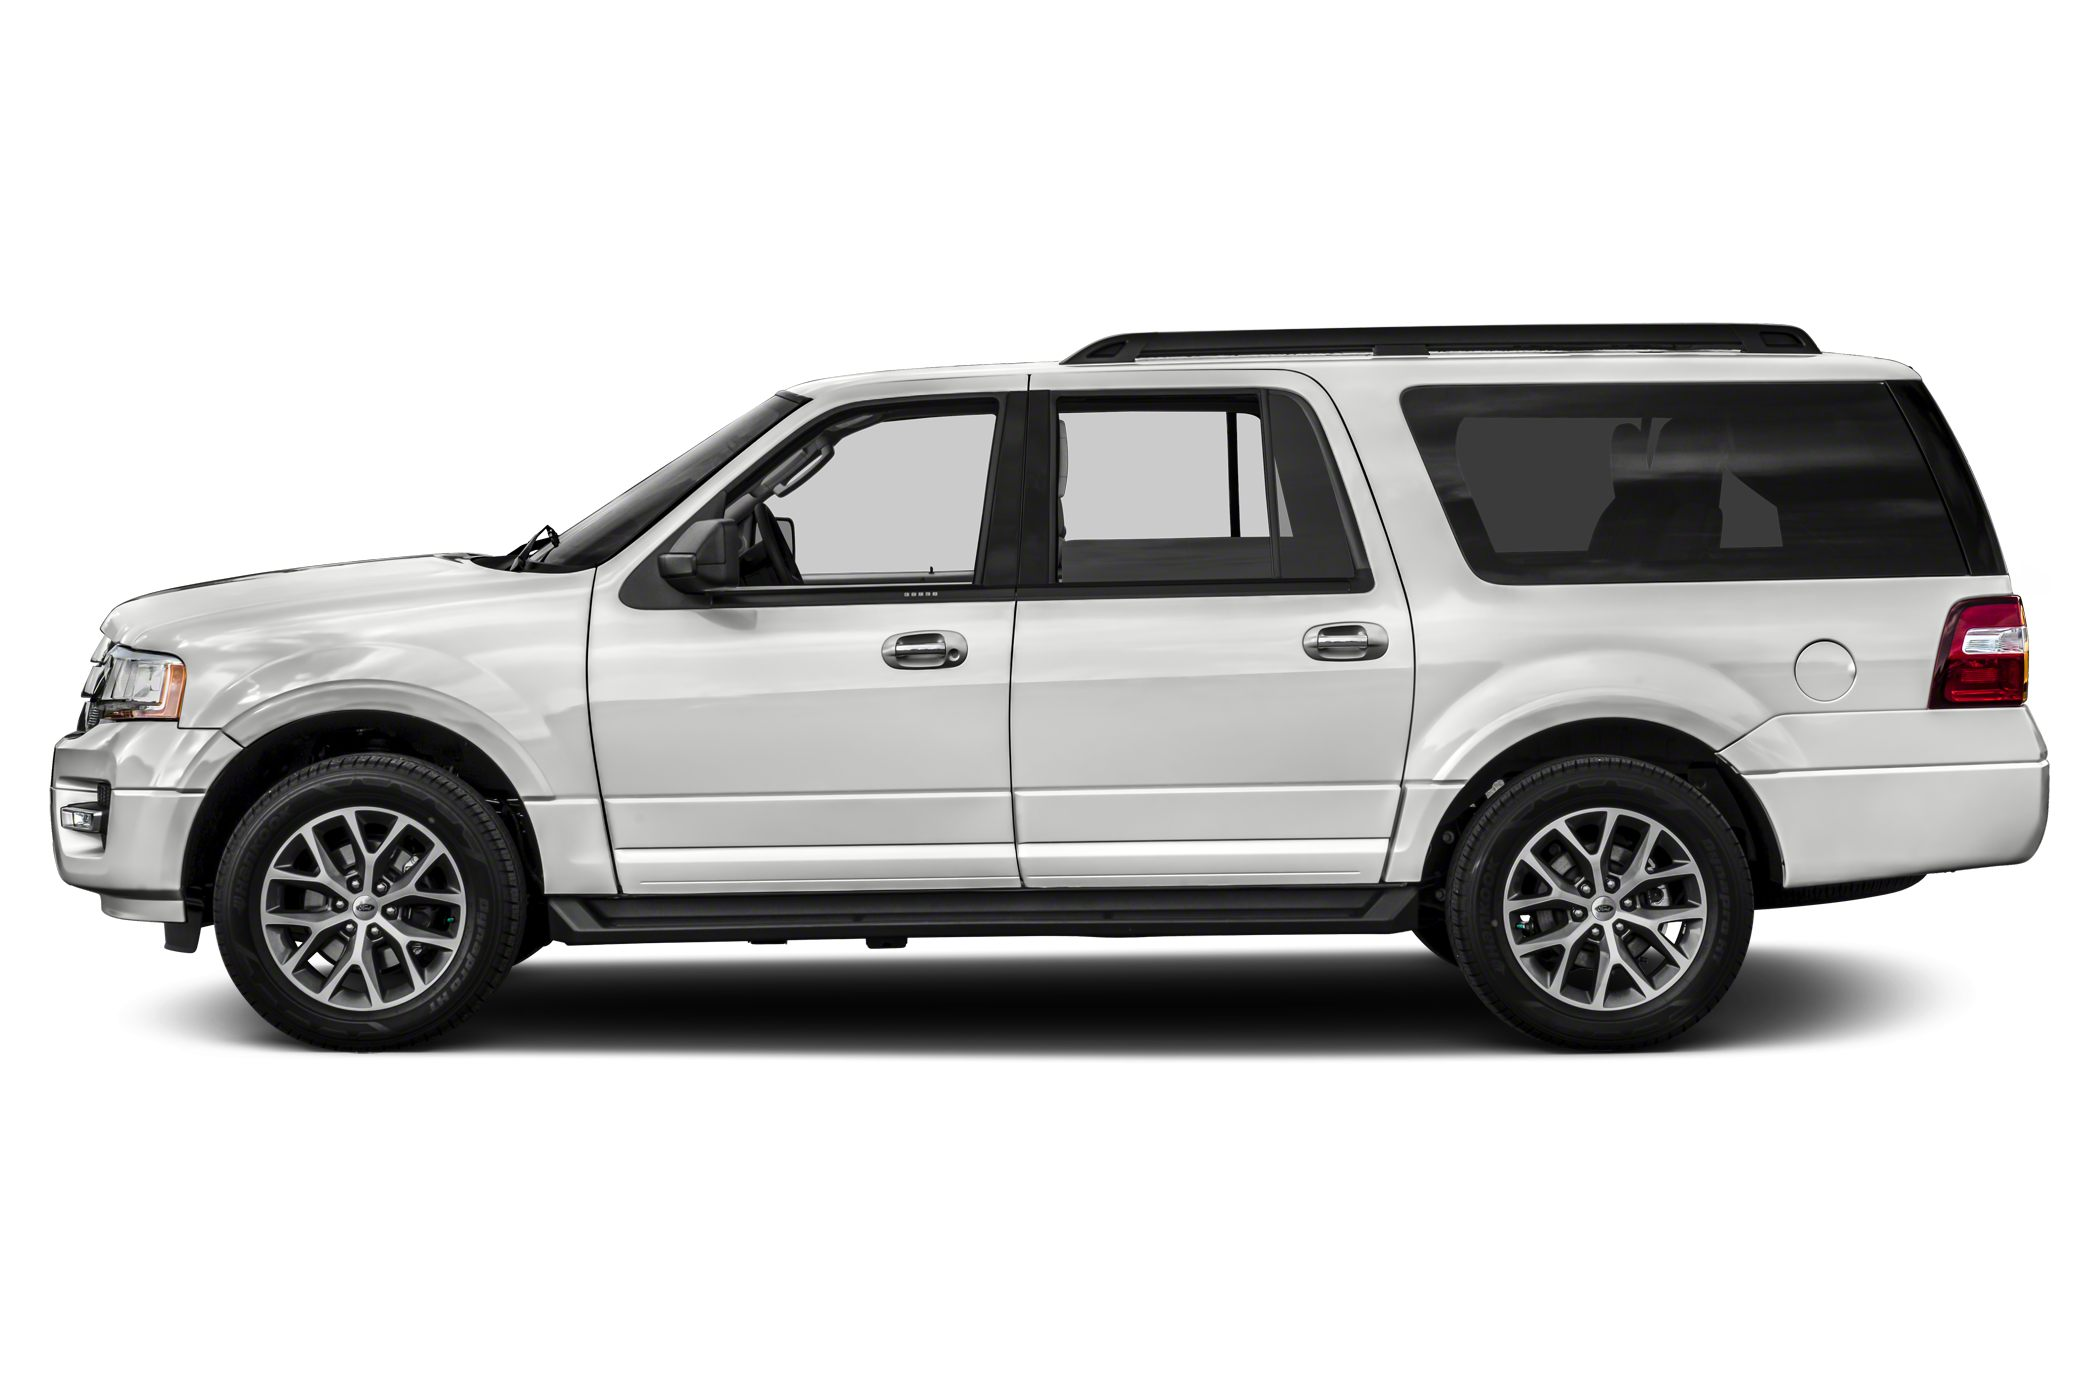 Used  Ford Expedition El Inventory Vehicle Details At Ipswich Ford Inc Your Ipswich Massachusetts Ford Dealer